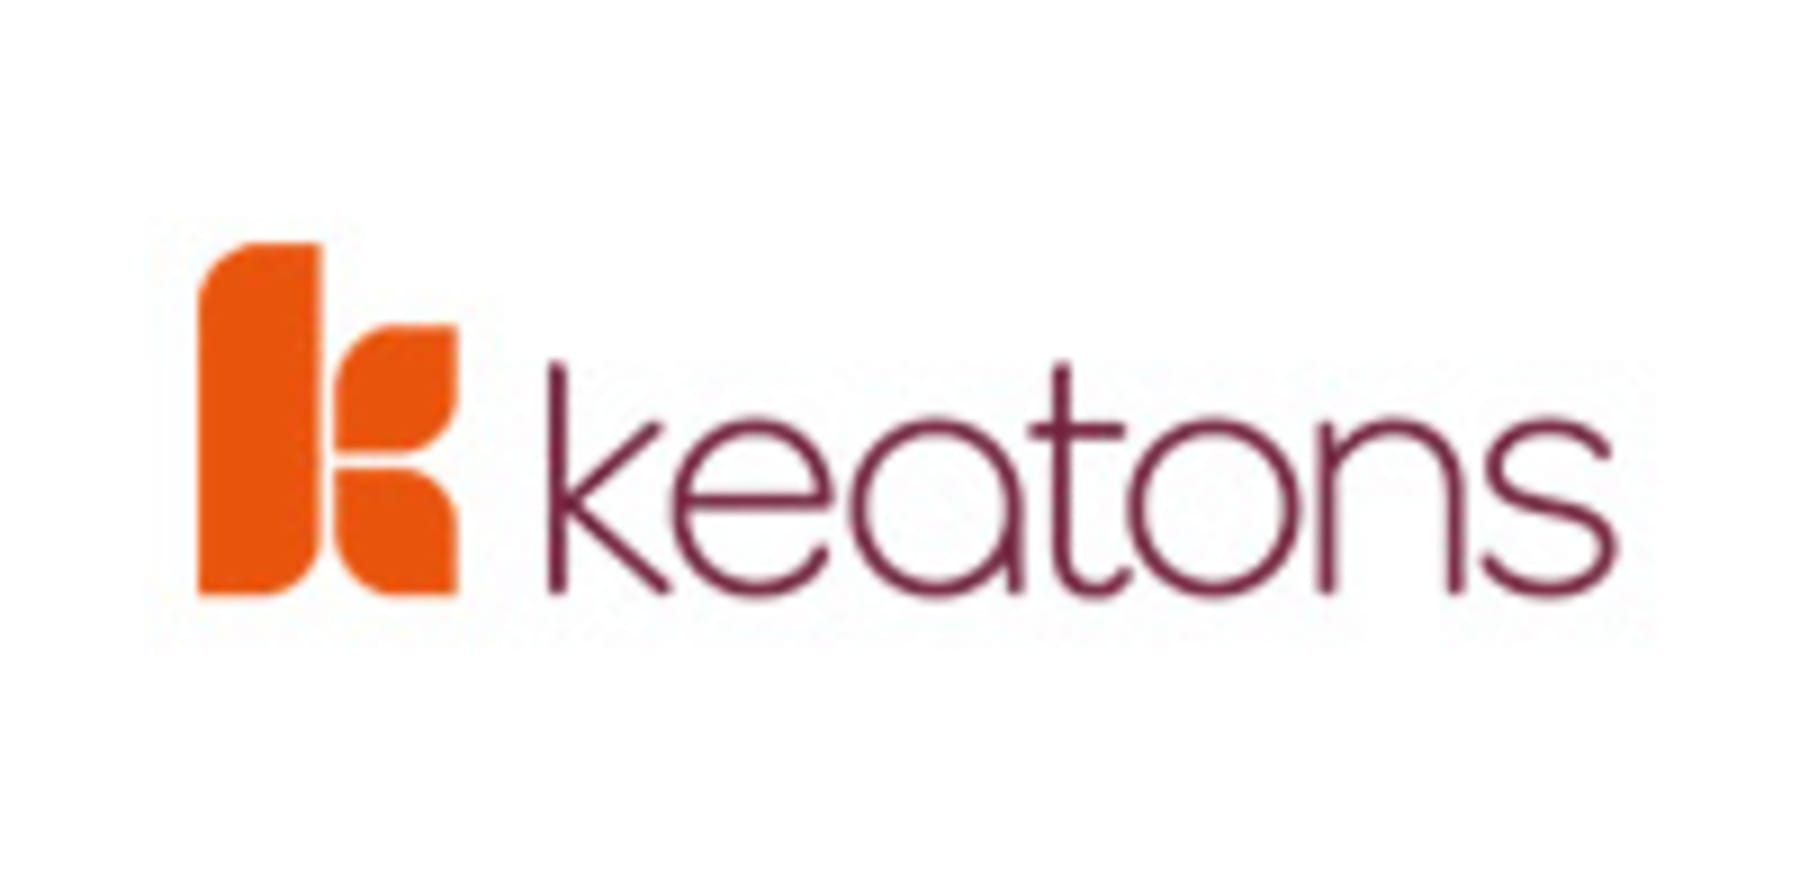 Keatons Estate Agents